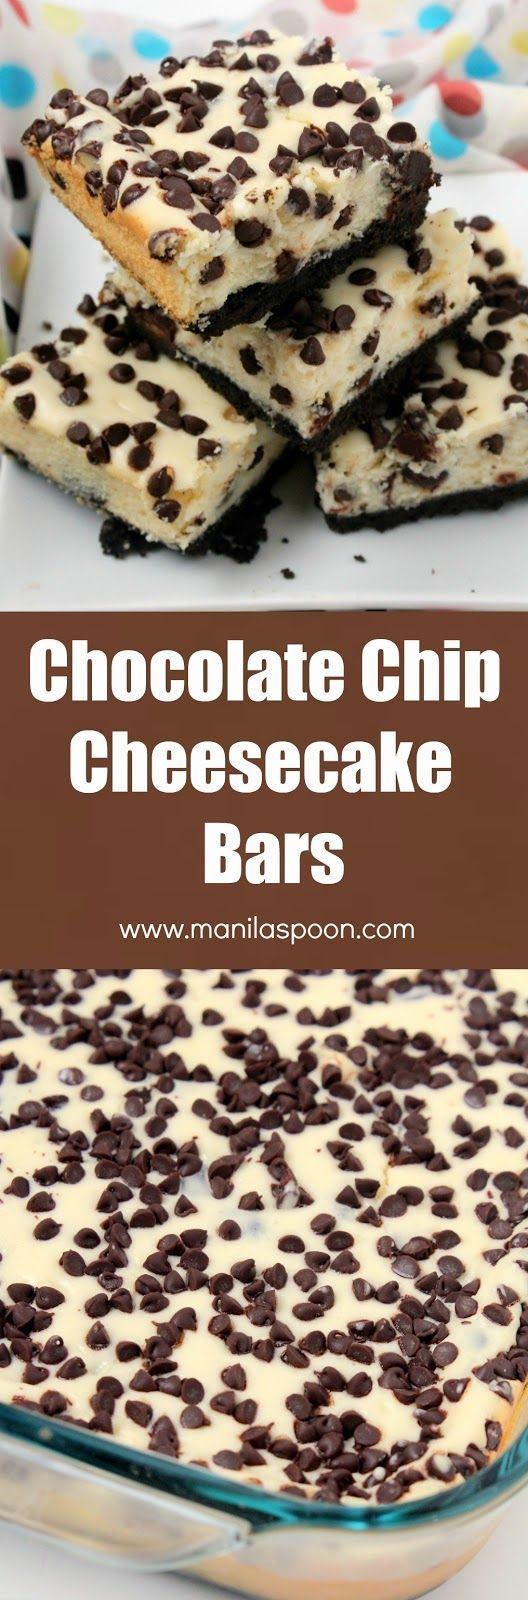 Craving chocolate and cheesecake? These delicious choco chip cheesecake bars are the solution! Easy recipe that you will make again and again. | http://manilaspoon.com